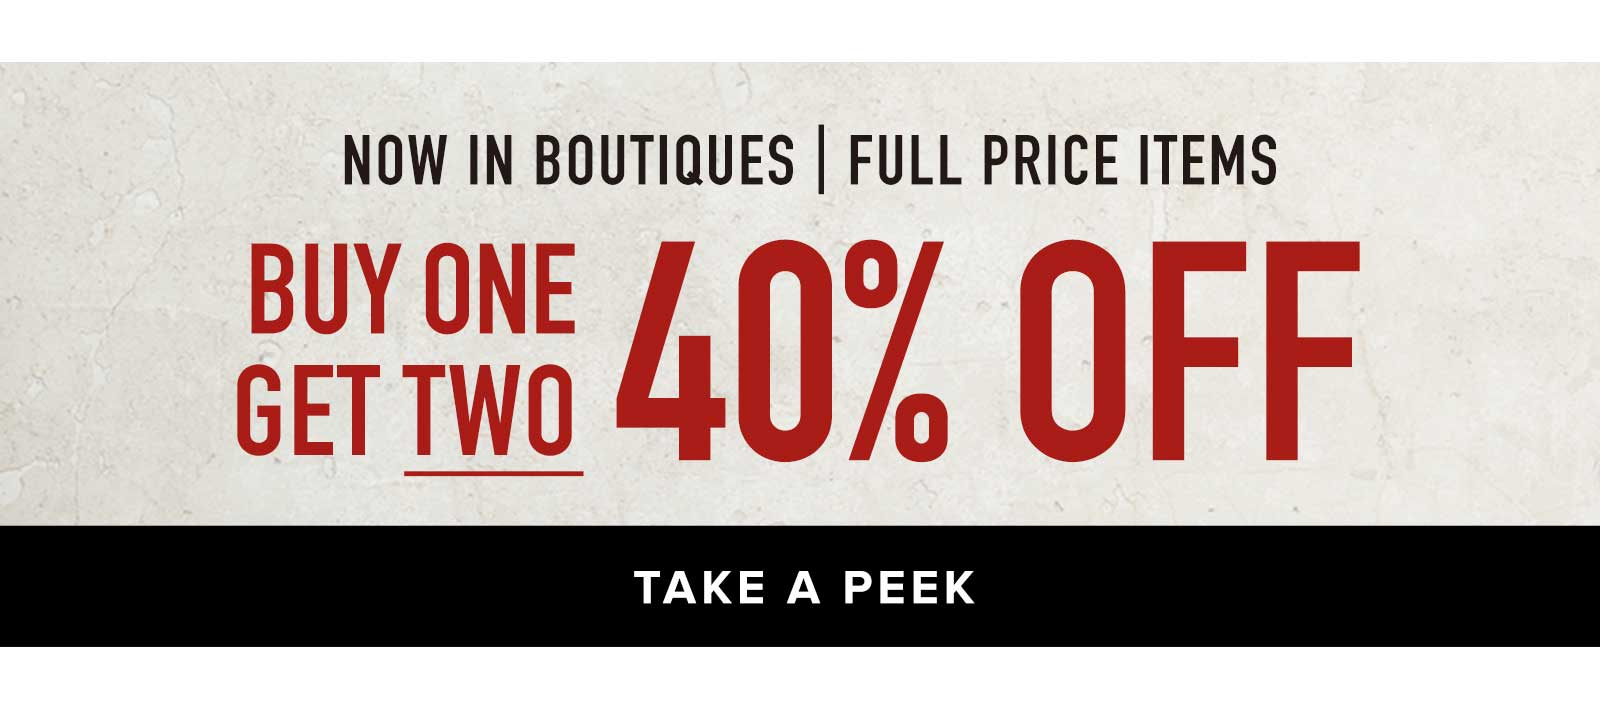 B1G2 40% OFF IN BOUTIQUES